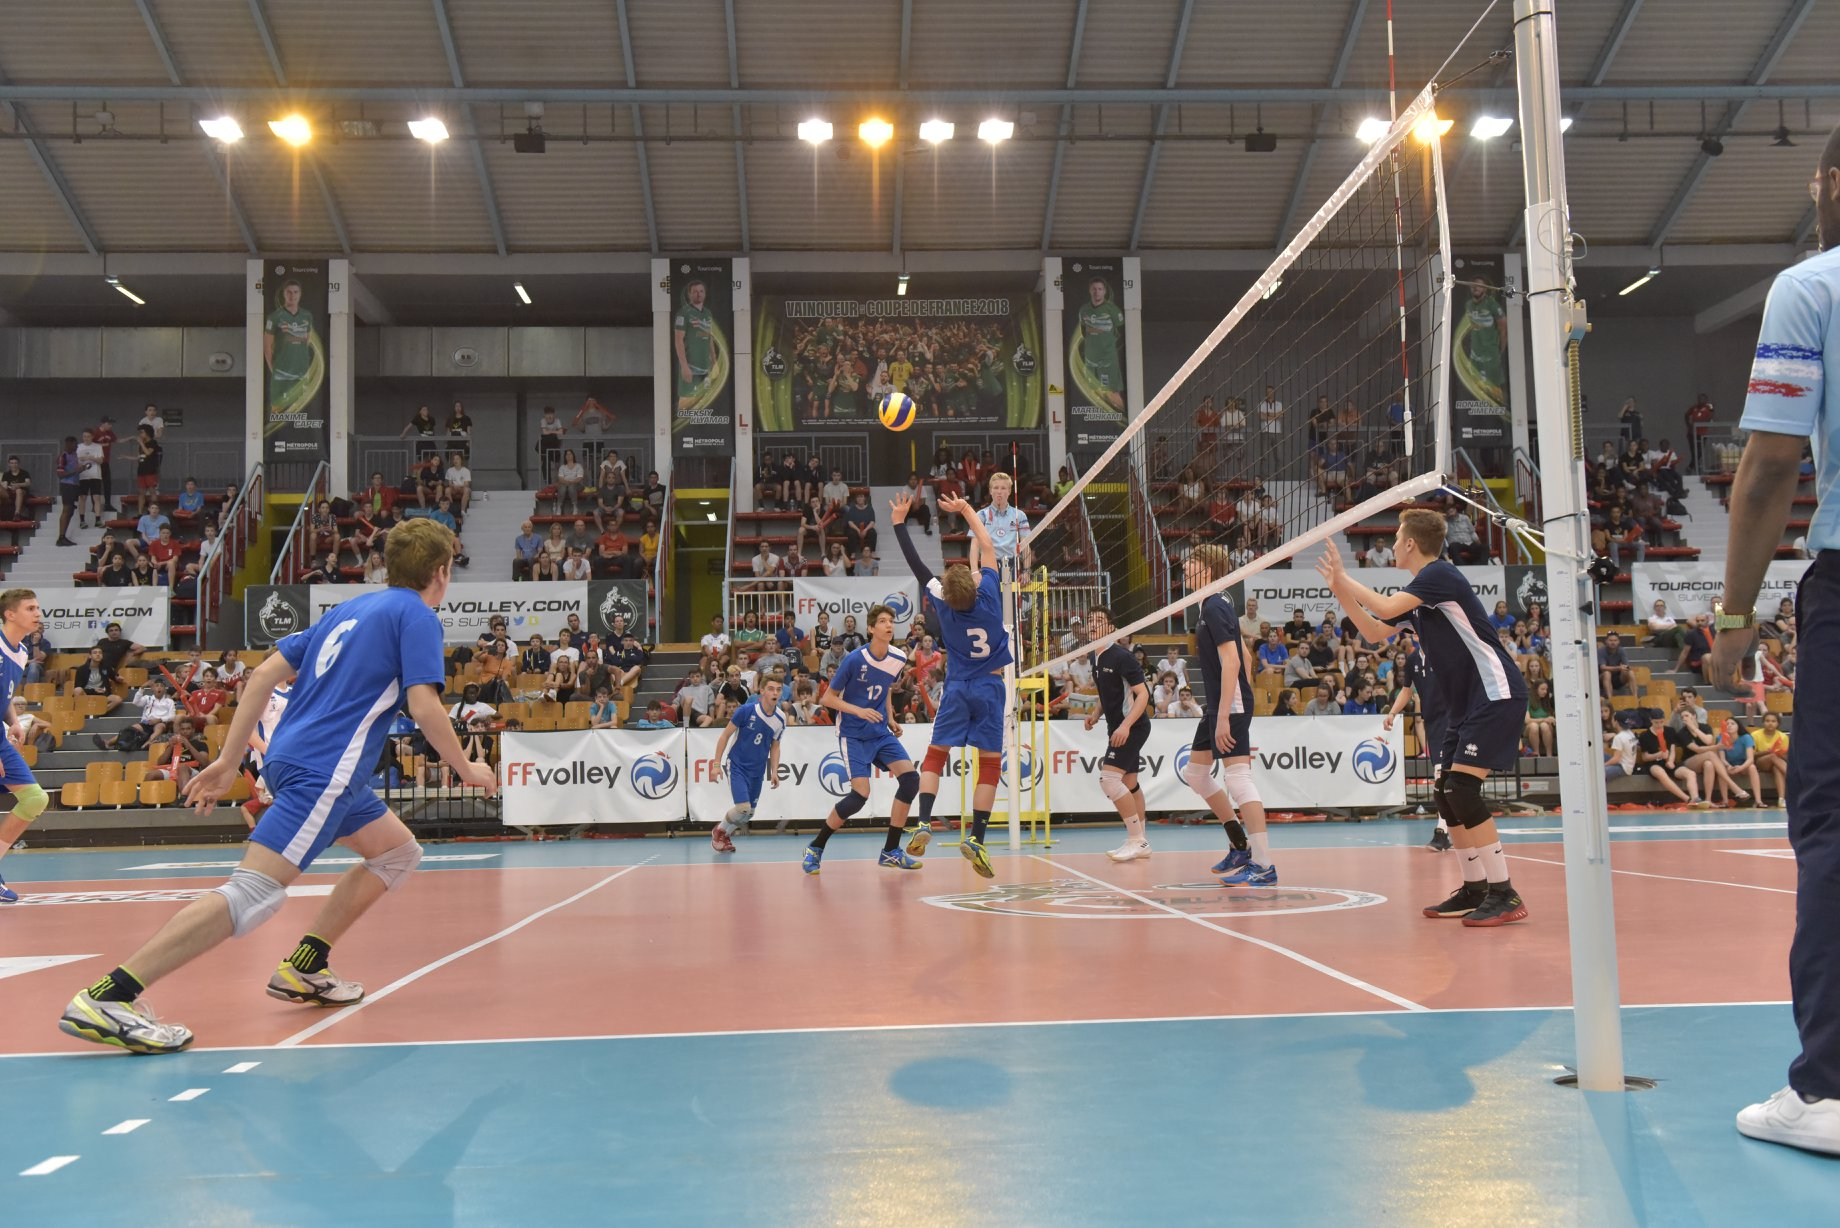 Volleyade Mas 1 - Copie